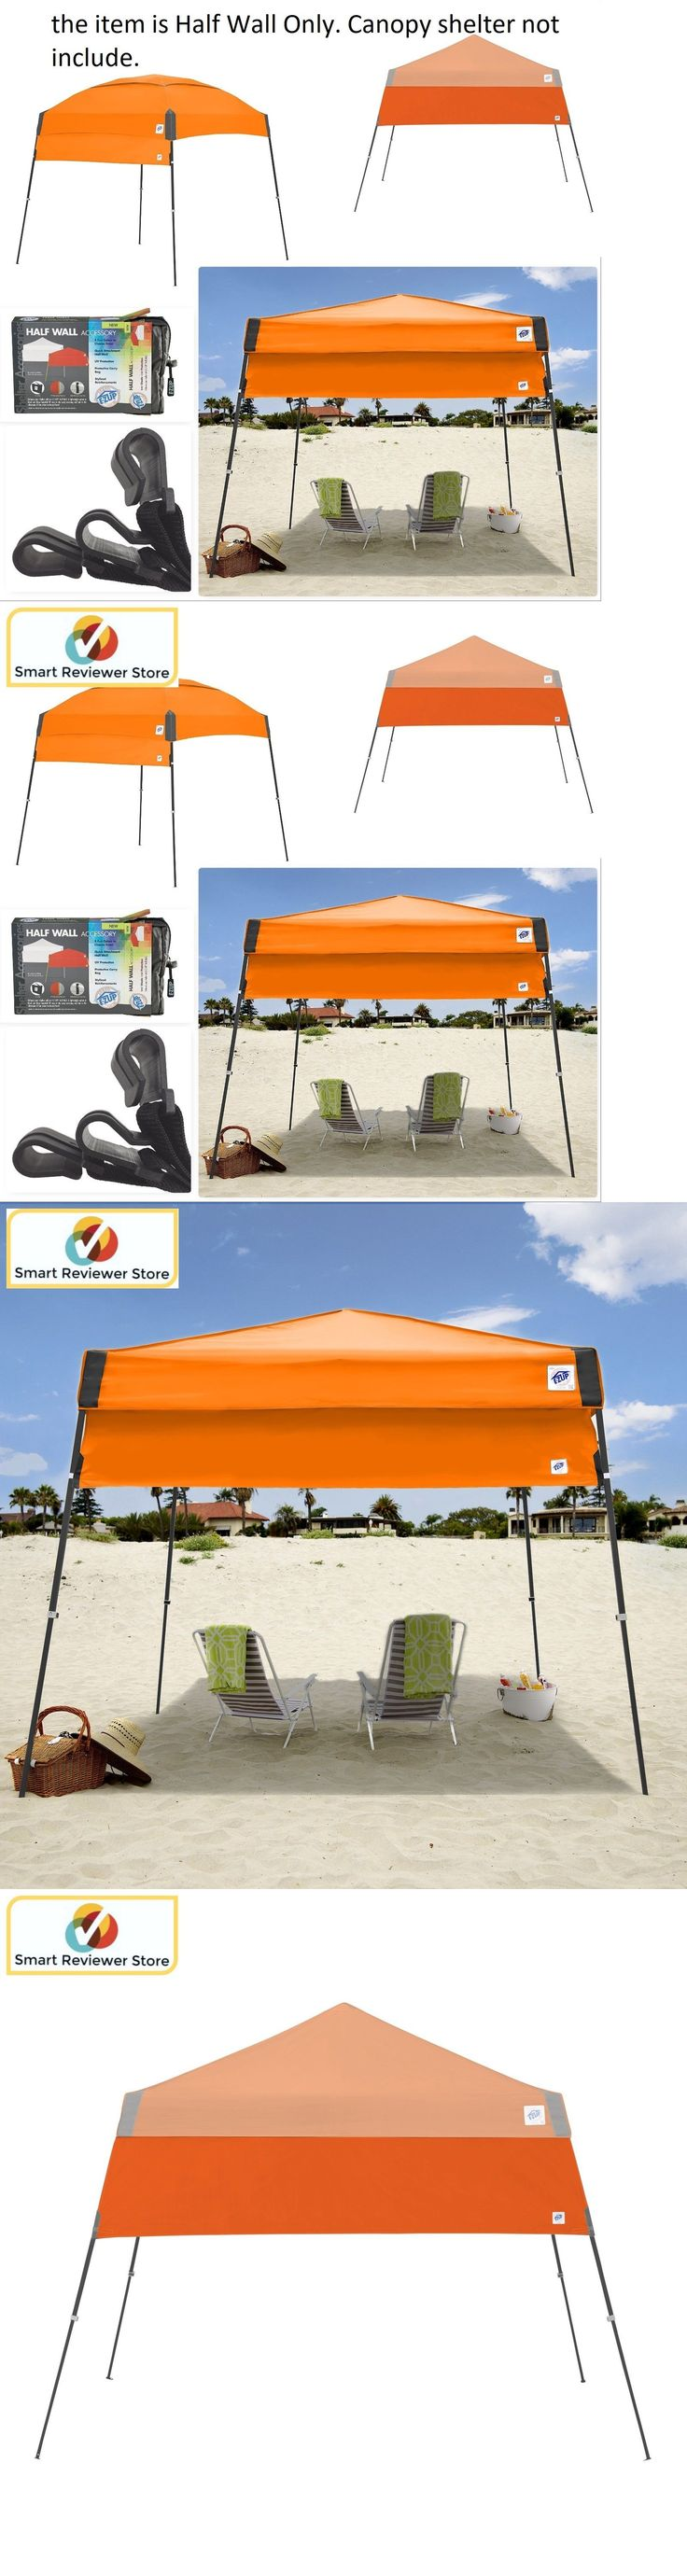 Tent and Canopy Accessories 36120: Instant Canopy Tent 10X10 Half Wall Outdoor Pop Up Gazebo Patio Beach Sun Shade -> BUY IT NOW ONLY: $70.33 on eBay!